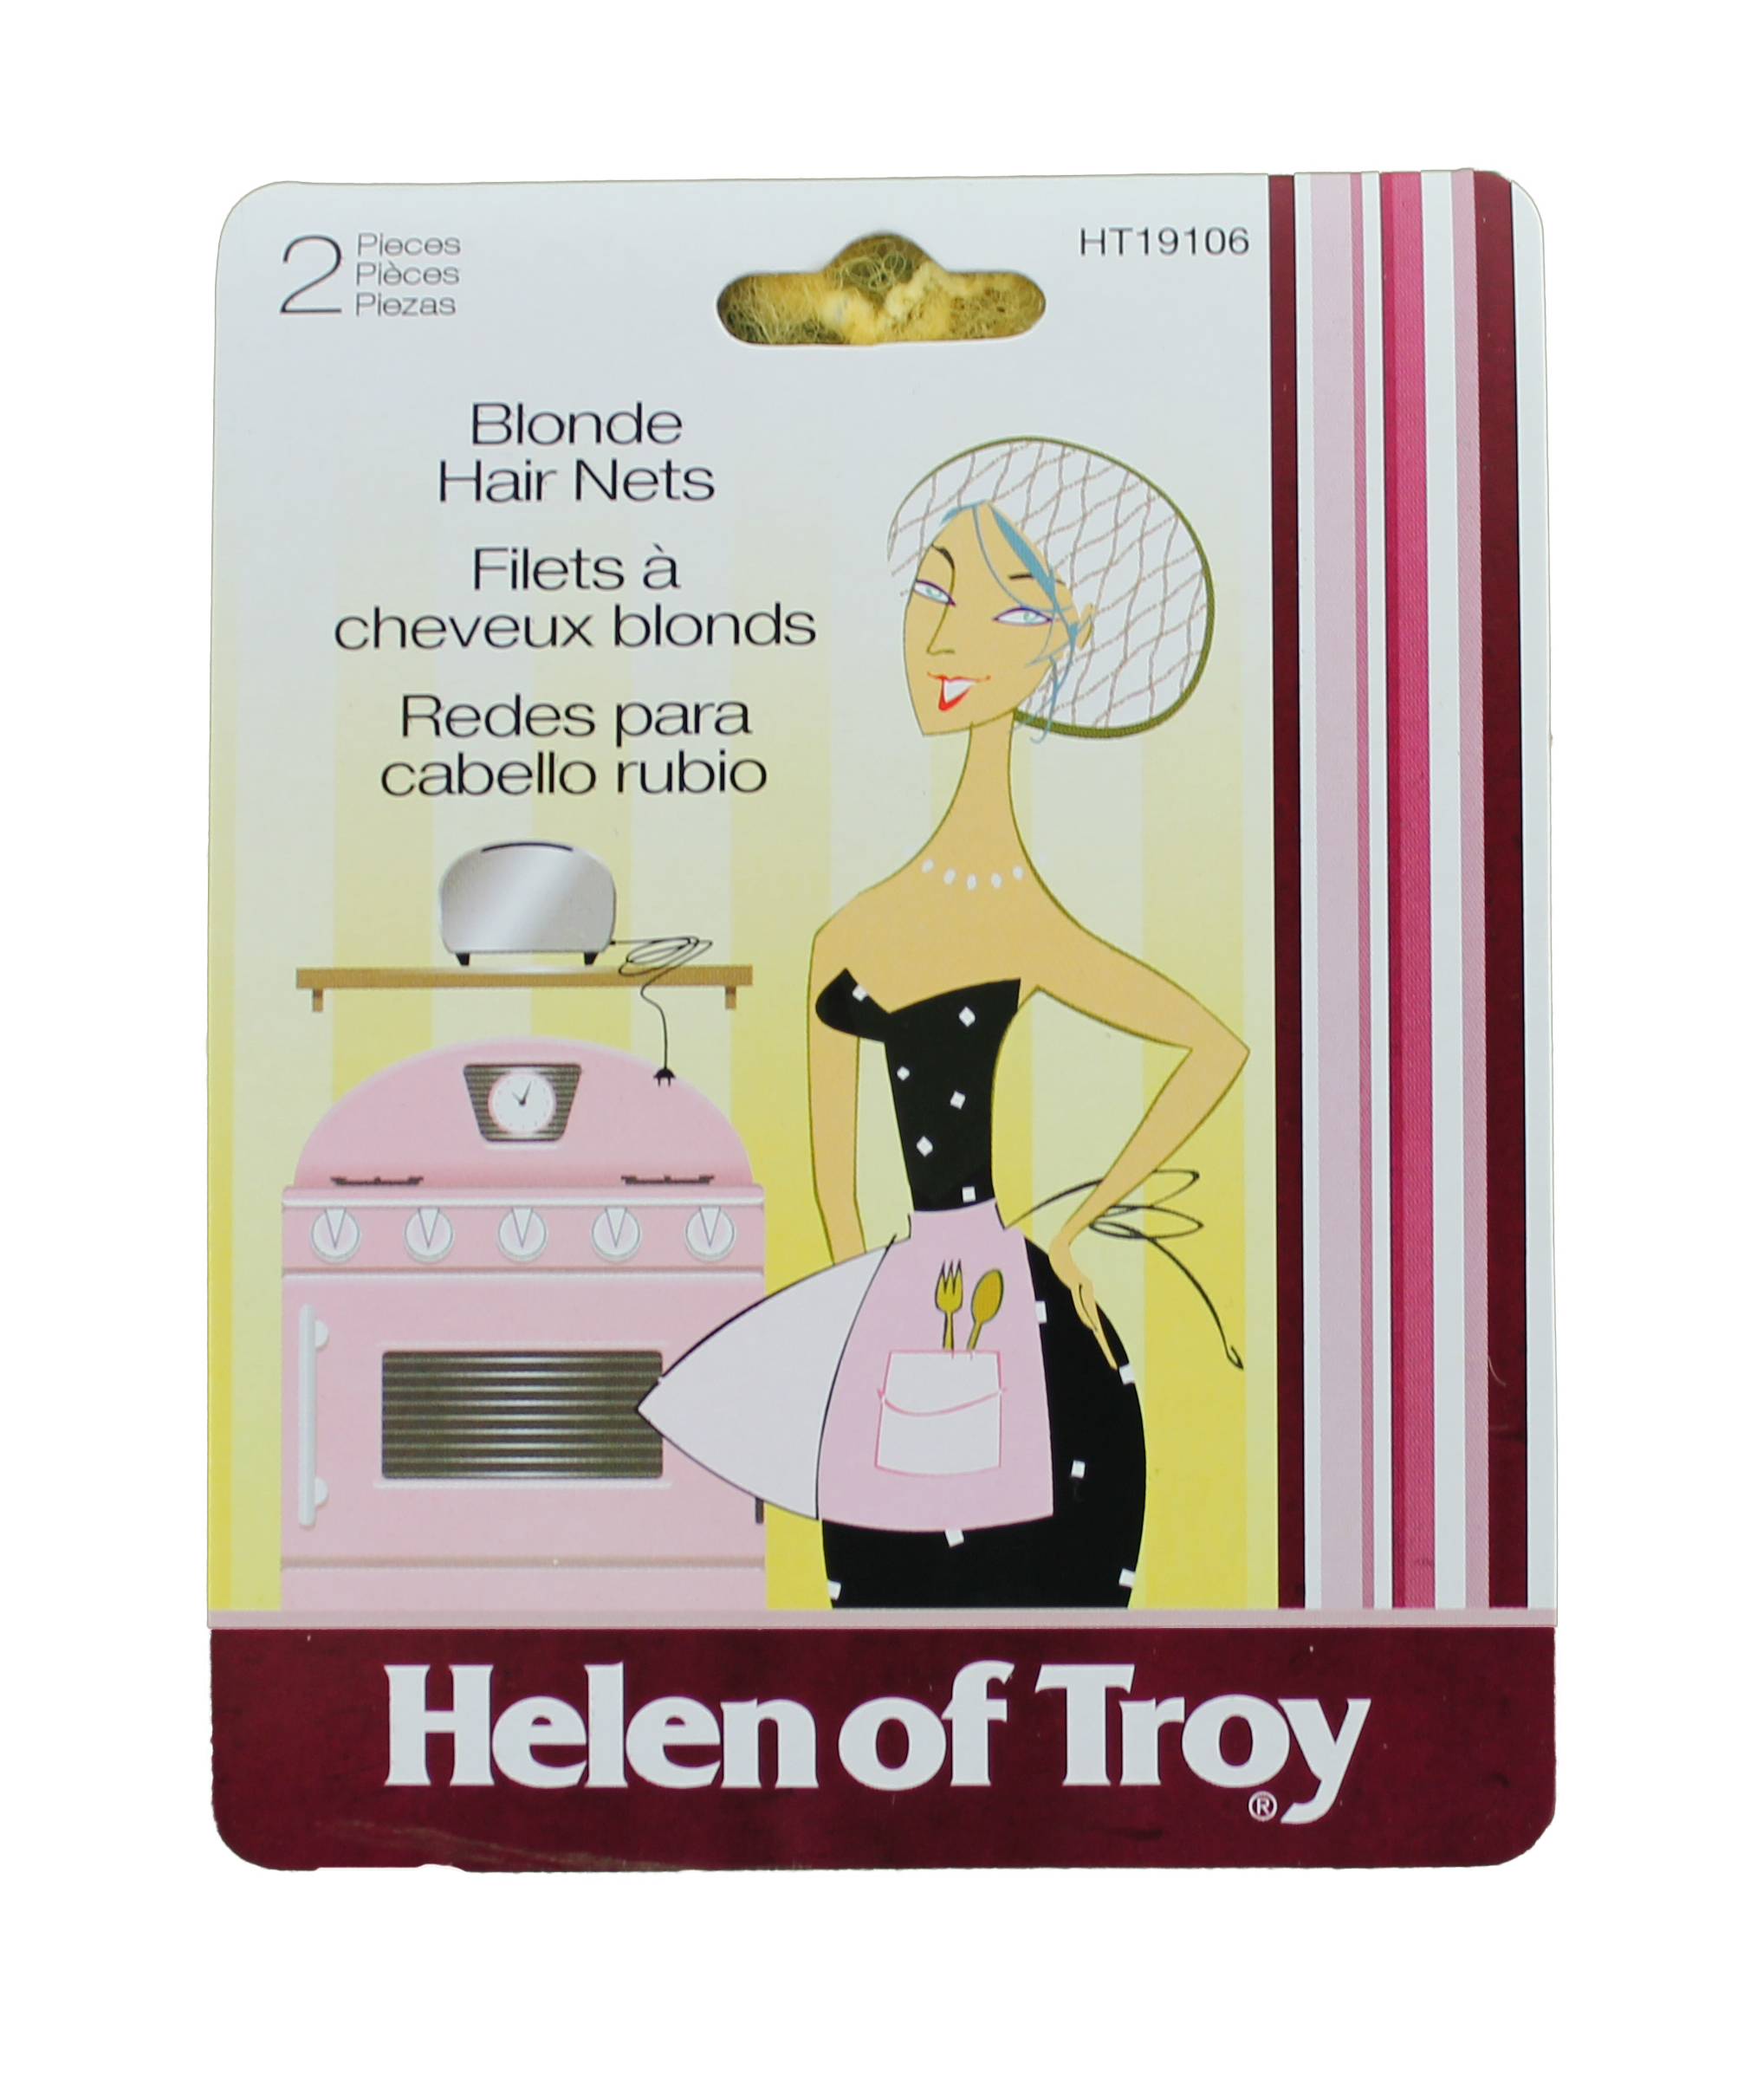 2 Piece Blonde Hair Nets, Helen of Troy